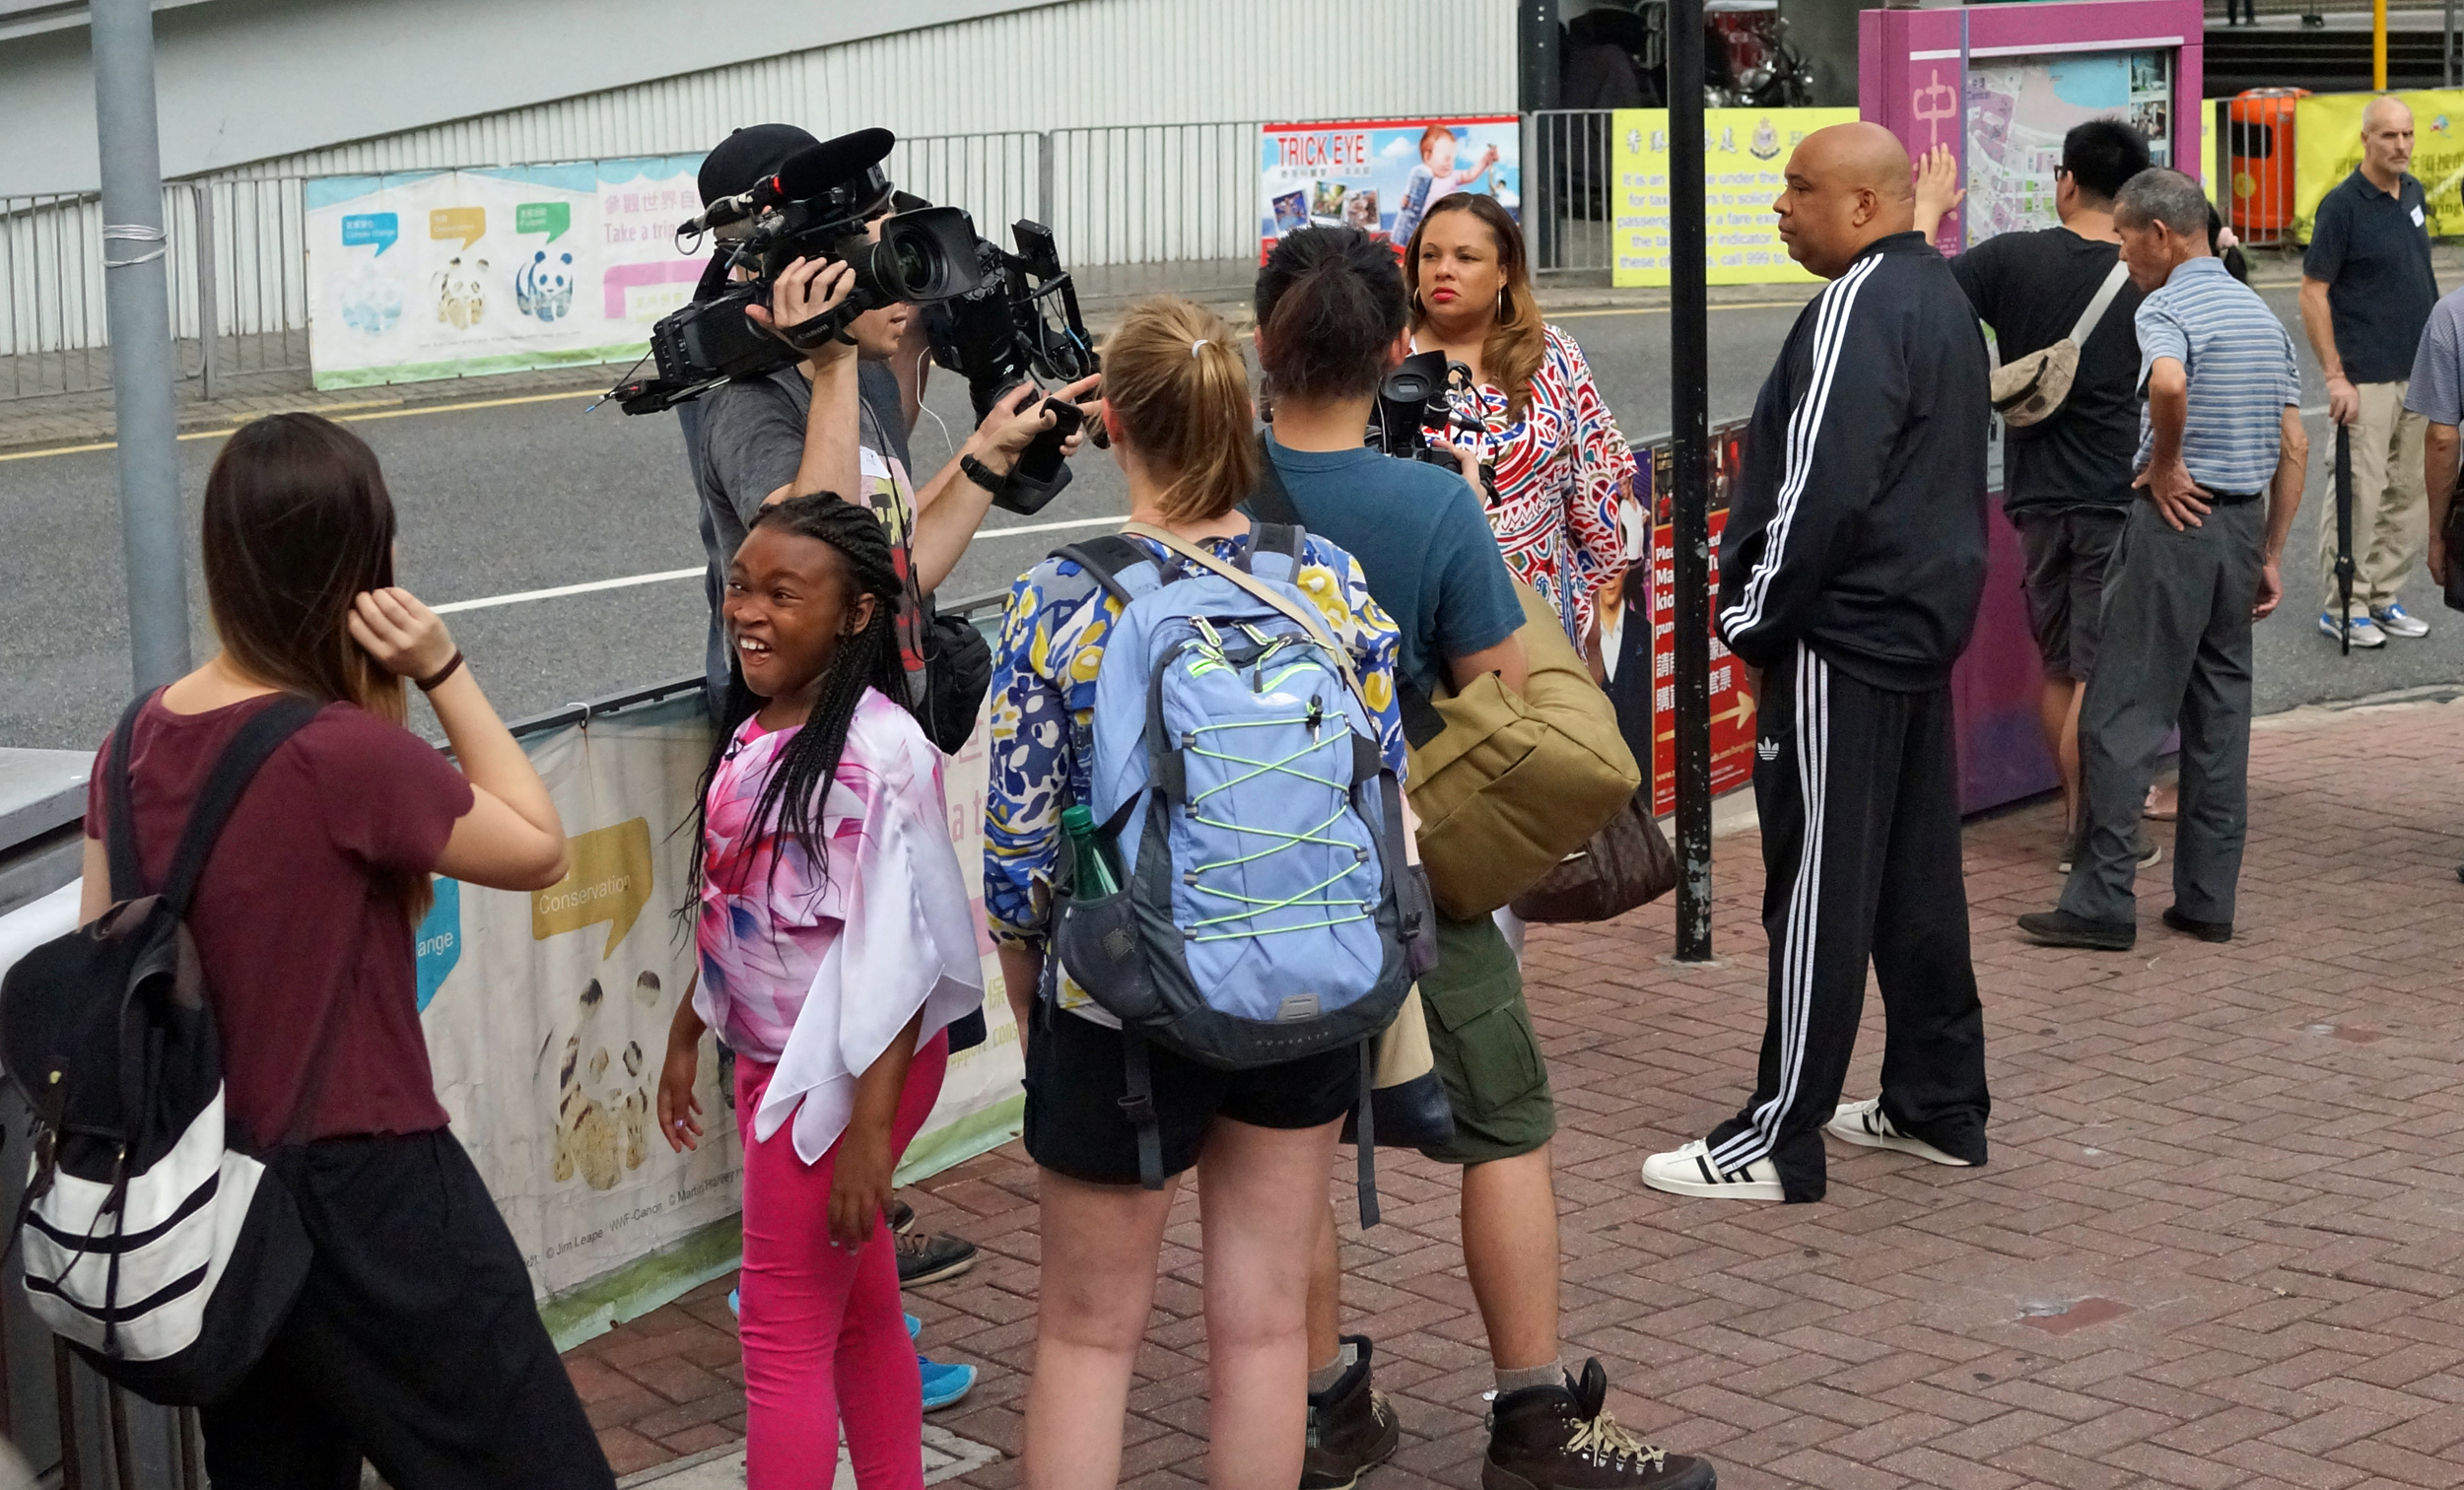 I was lurking around the Peak Tram on Garden Road a few weeks ago when the people I was with pointed out that the chap in the black track suit was the famous rapper Joseph Simmons from RUN DMC fame... I was a bit worried about his daughter who pulled off one of the best gurns in the history of gurning! -